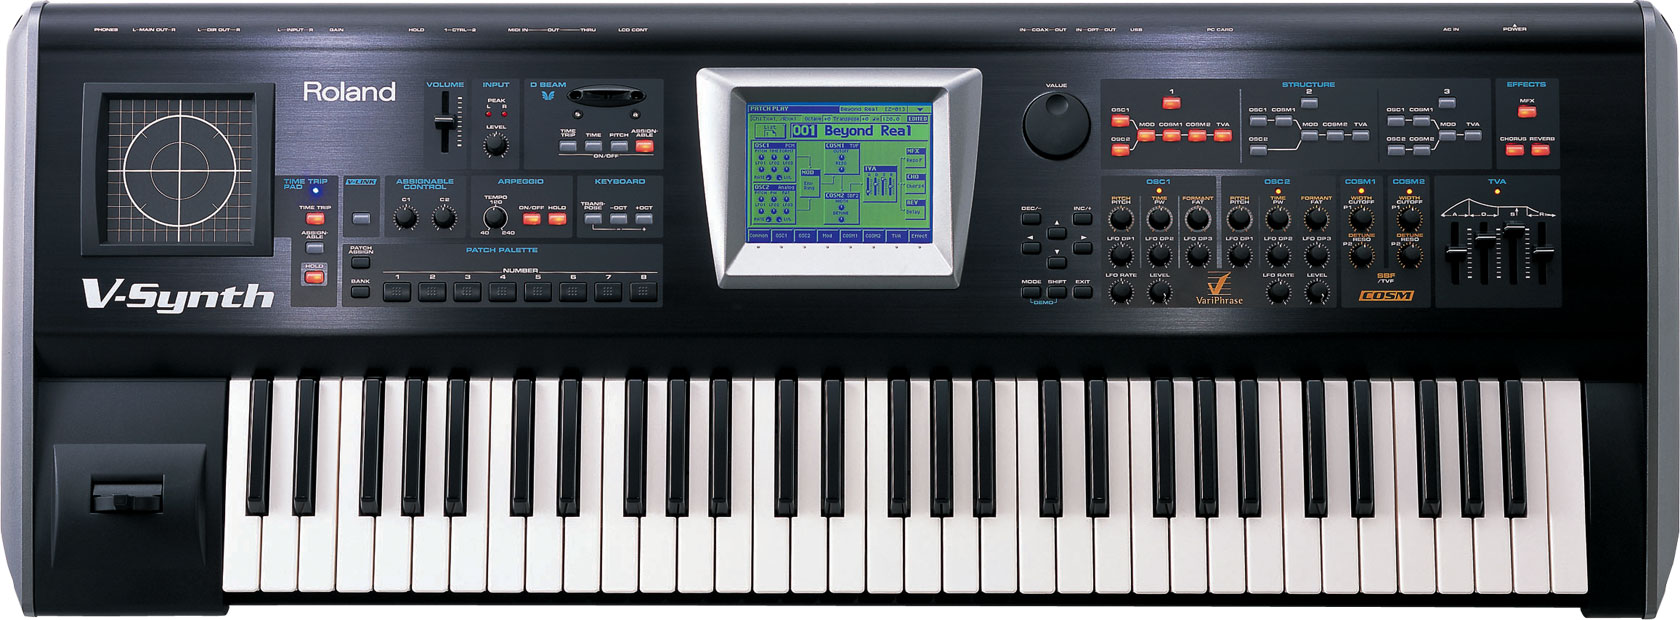 v_synth_top_gal.jpg